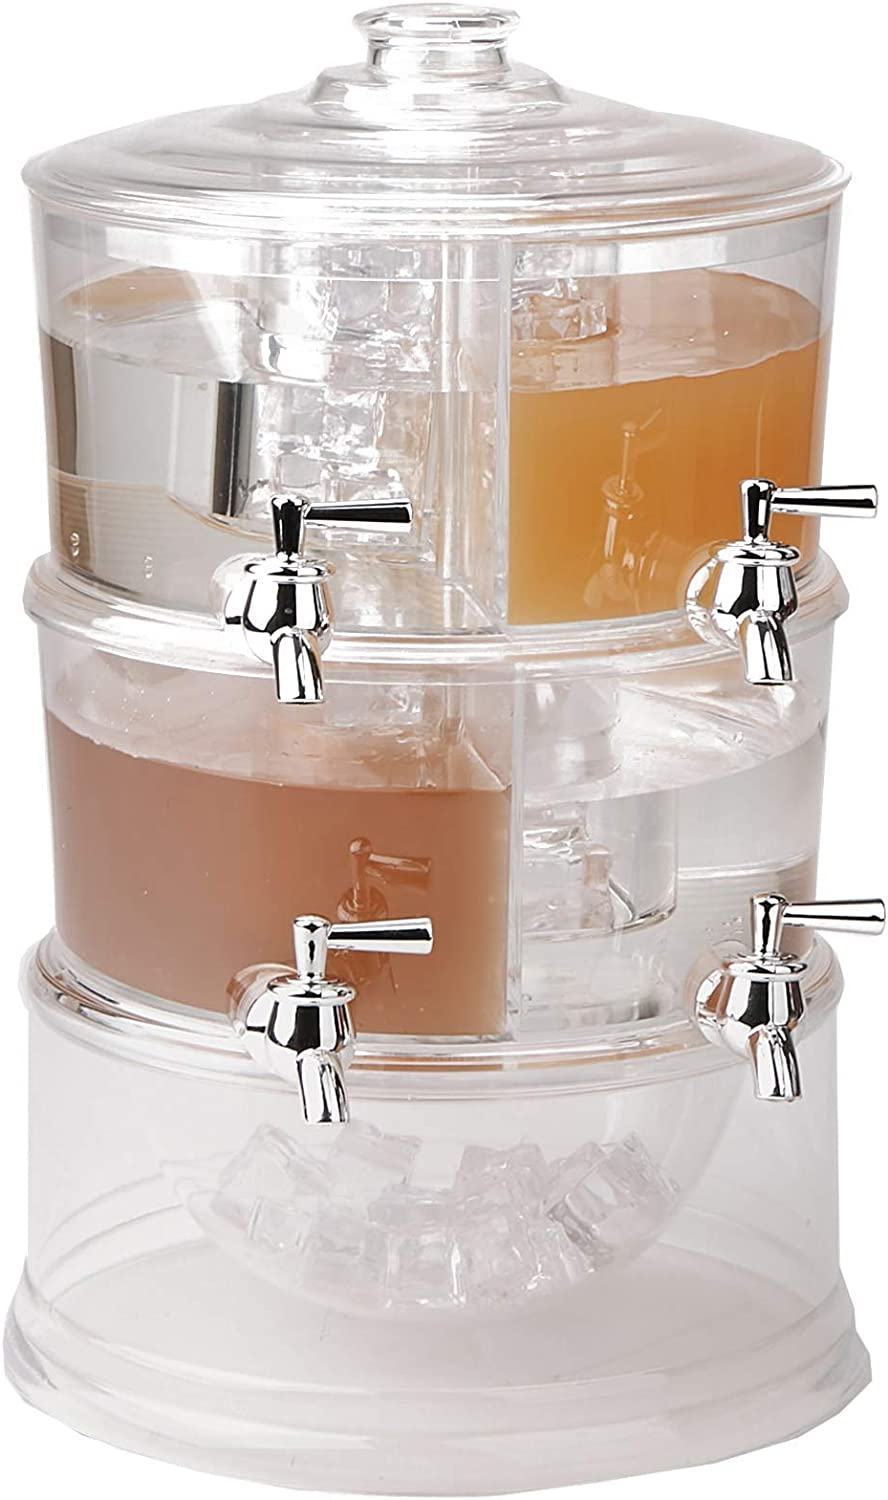 Mind Reader Beverage Dispenser, 2 Tier Stackable Holder with Lids, Clear Acrylic 4 Compartment Drinks Display with Spigots, One Size